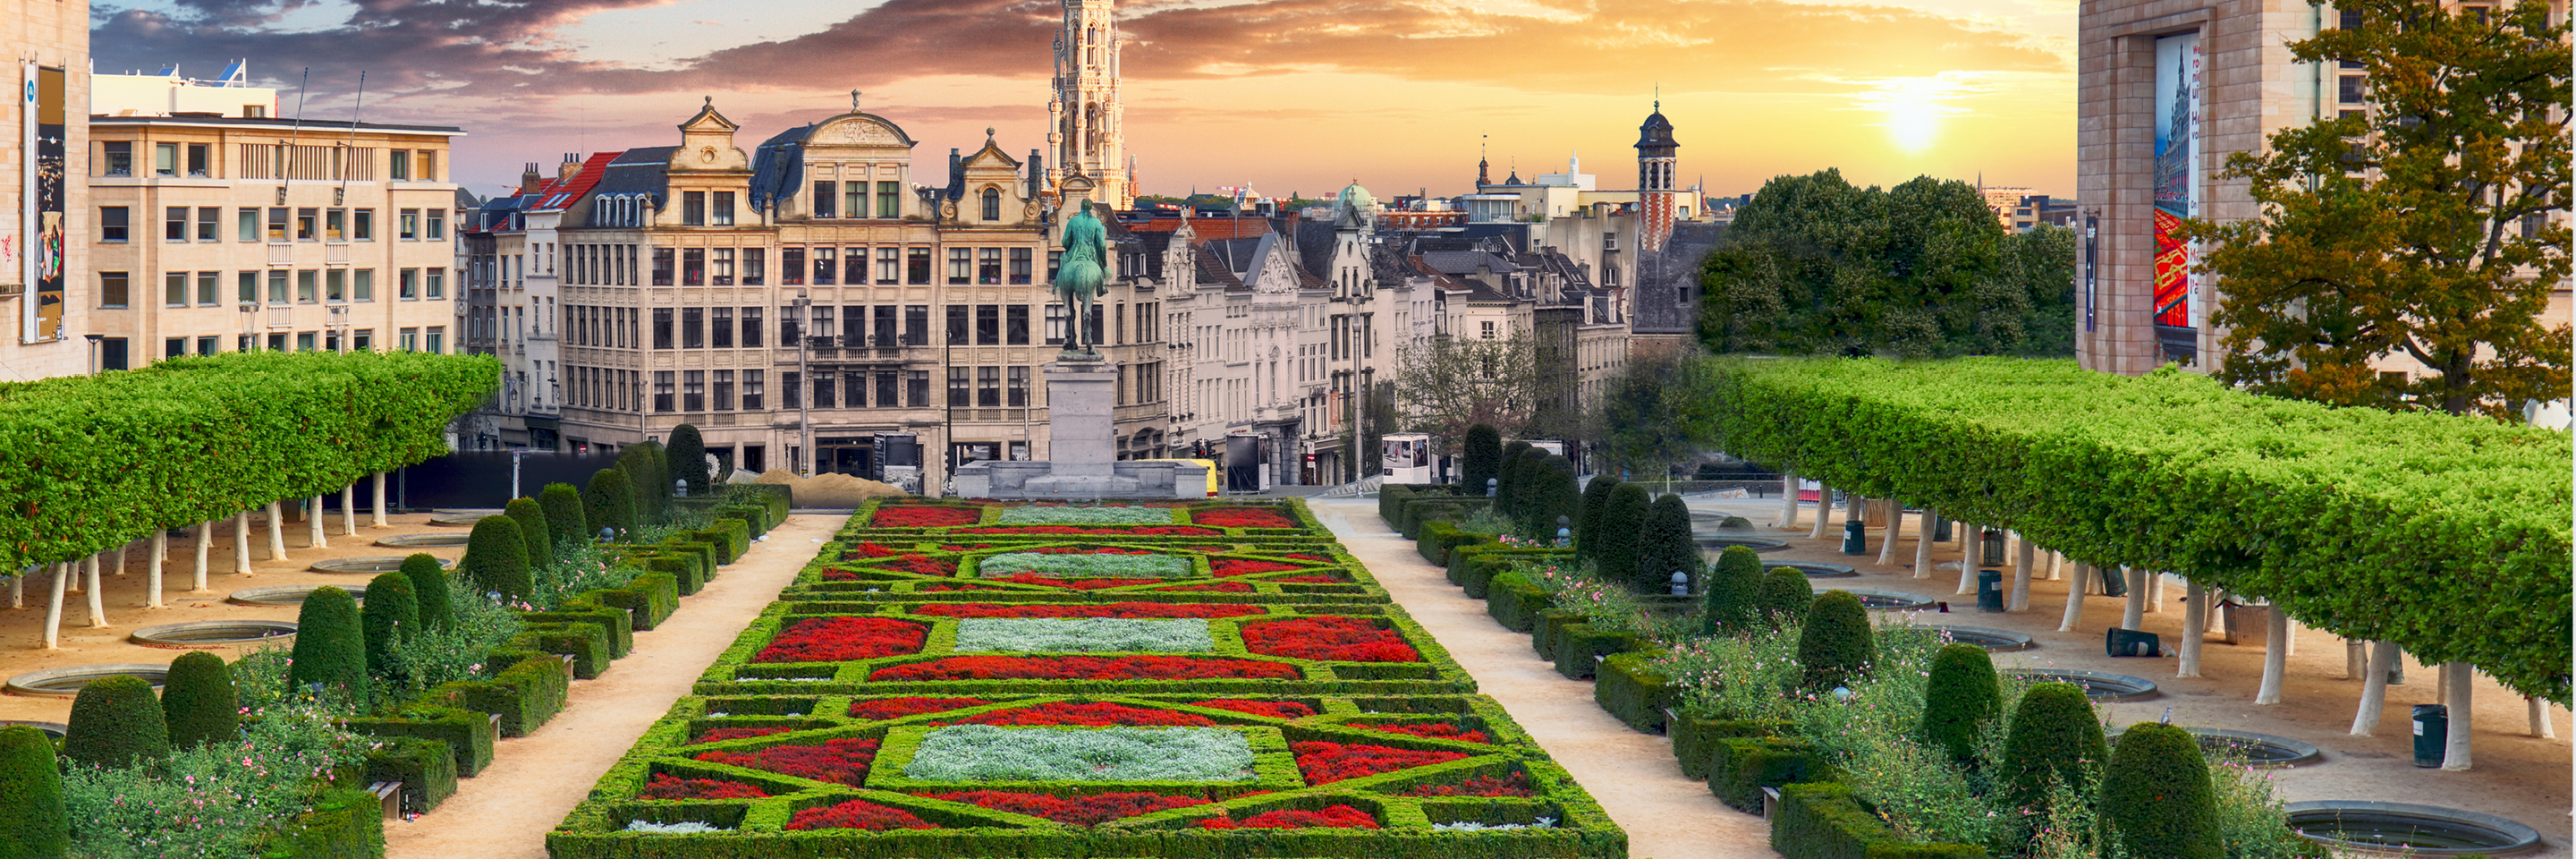 Tulip Time in Holland & Belgium for Garden and Nature Lovers